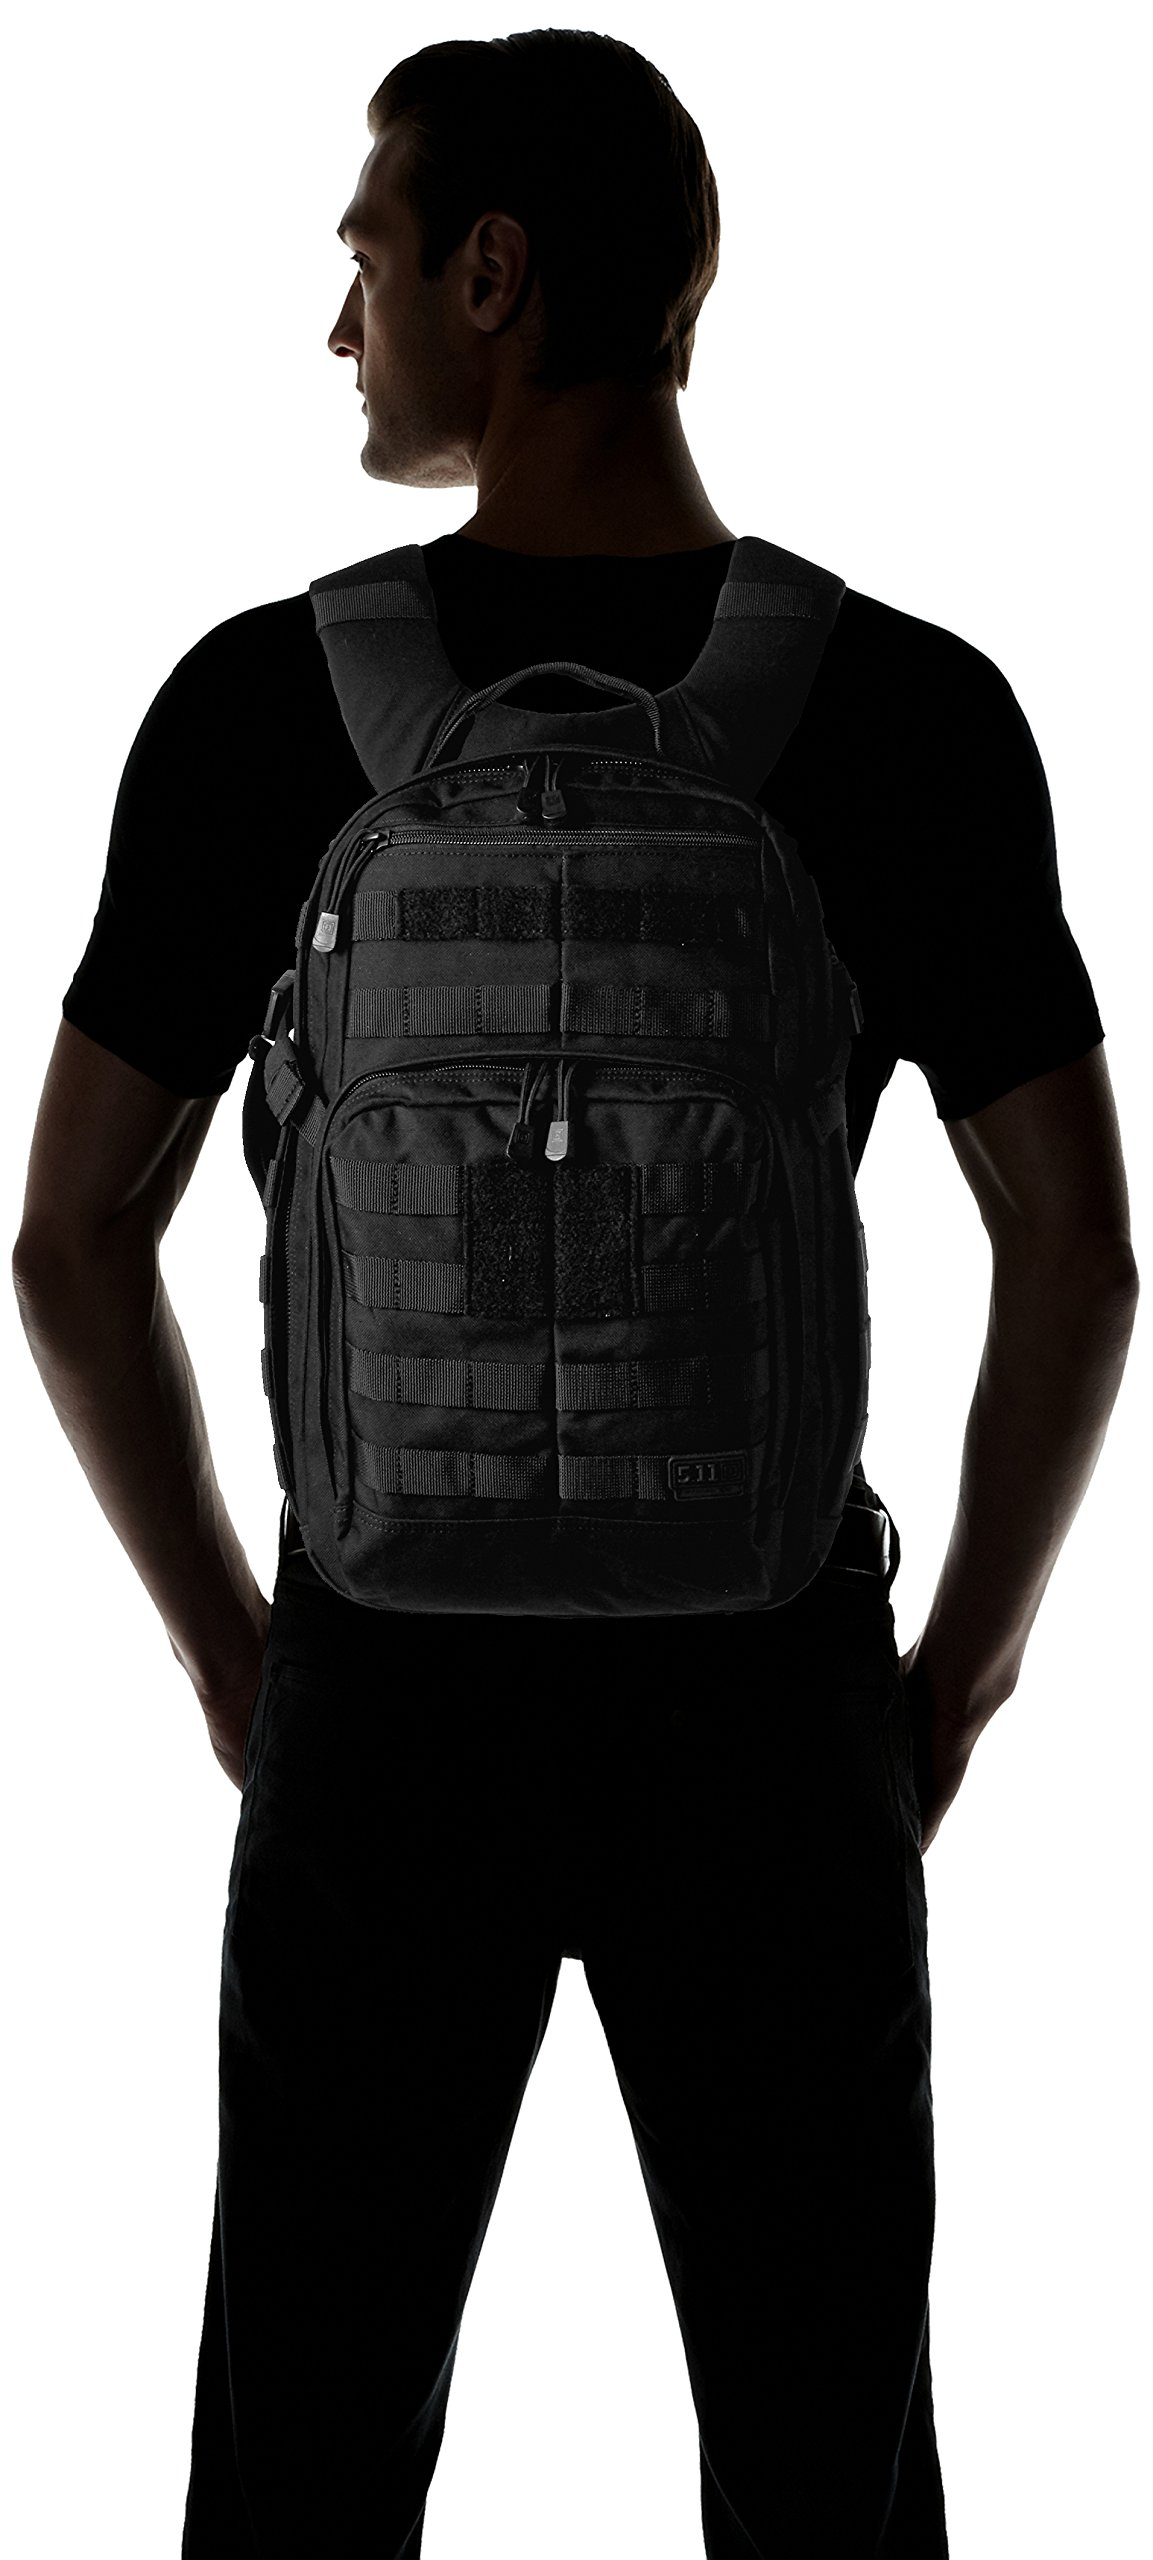 5.11 RUSH12 Tactical Military Assault Molle Backpack, Bug Out Rucksack Bag, Small, Style 56892, Black by 5.11 (Image #10)